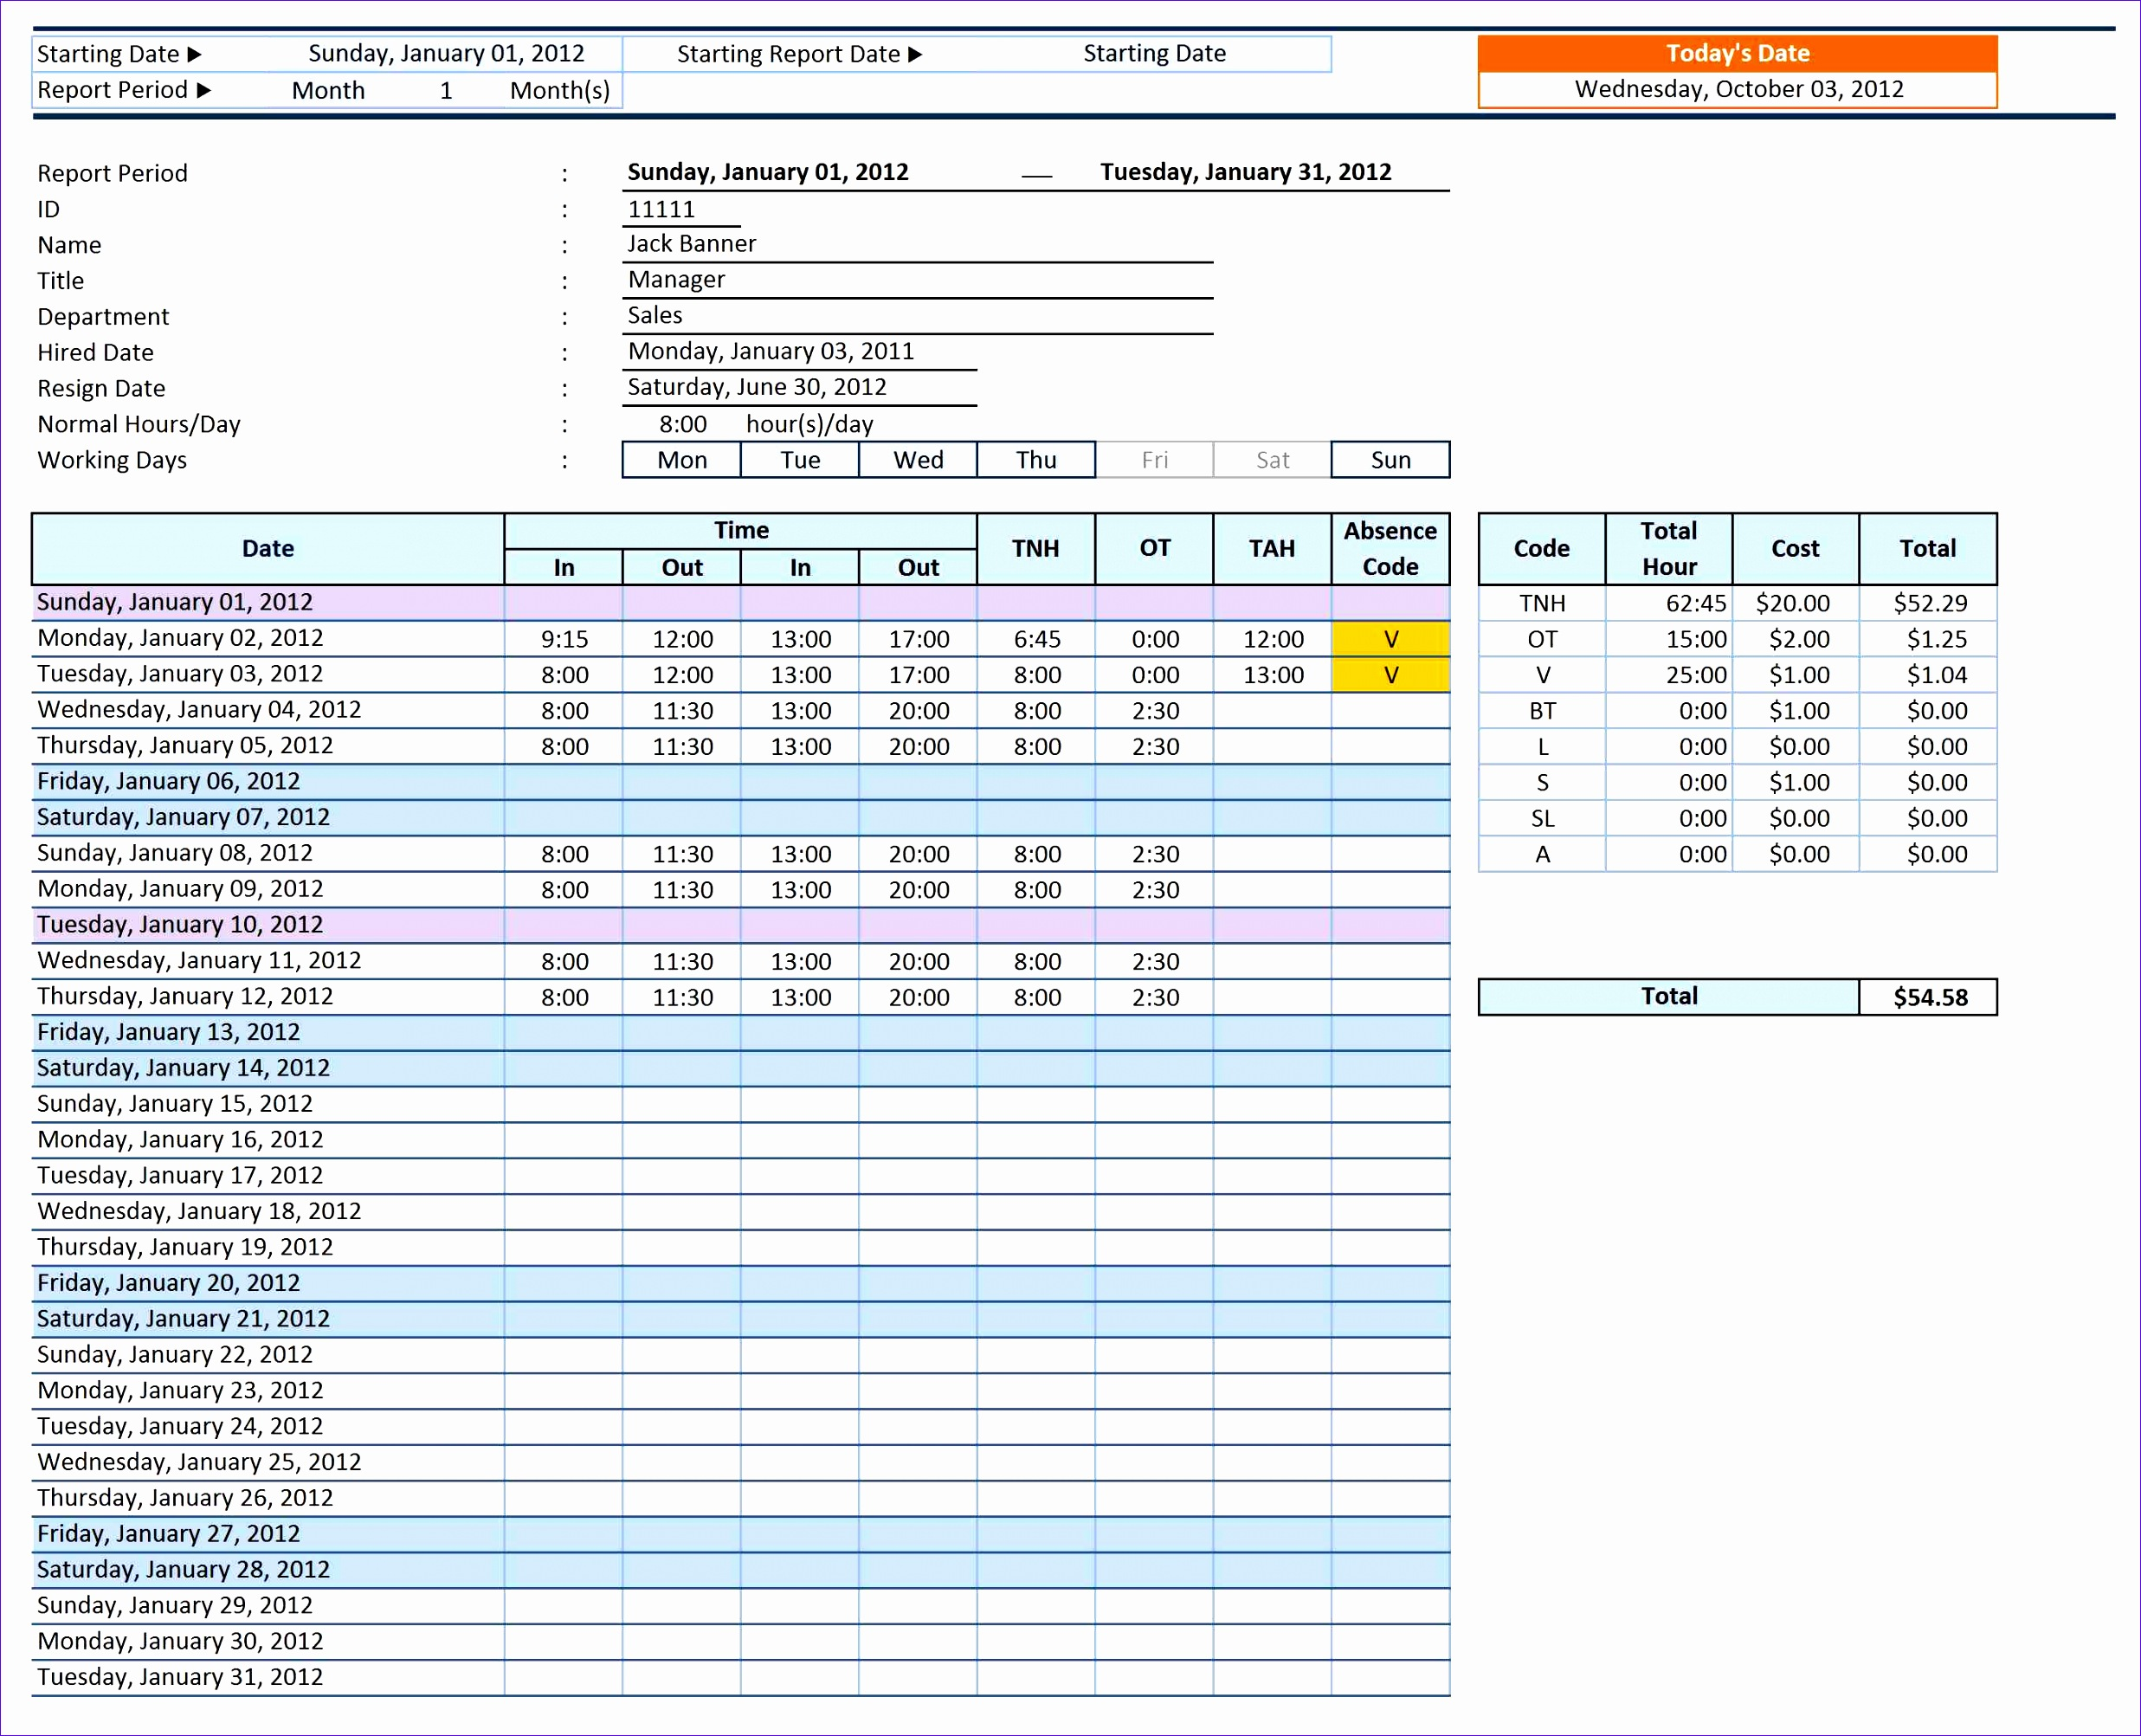 Cash Flow Projection Template Excel Kklkd Inspirational Timing Sheet In Excel Pacq